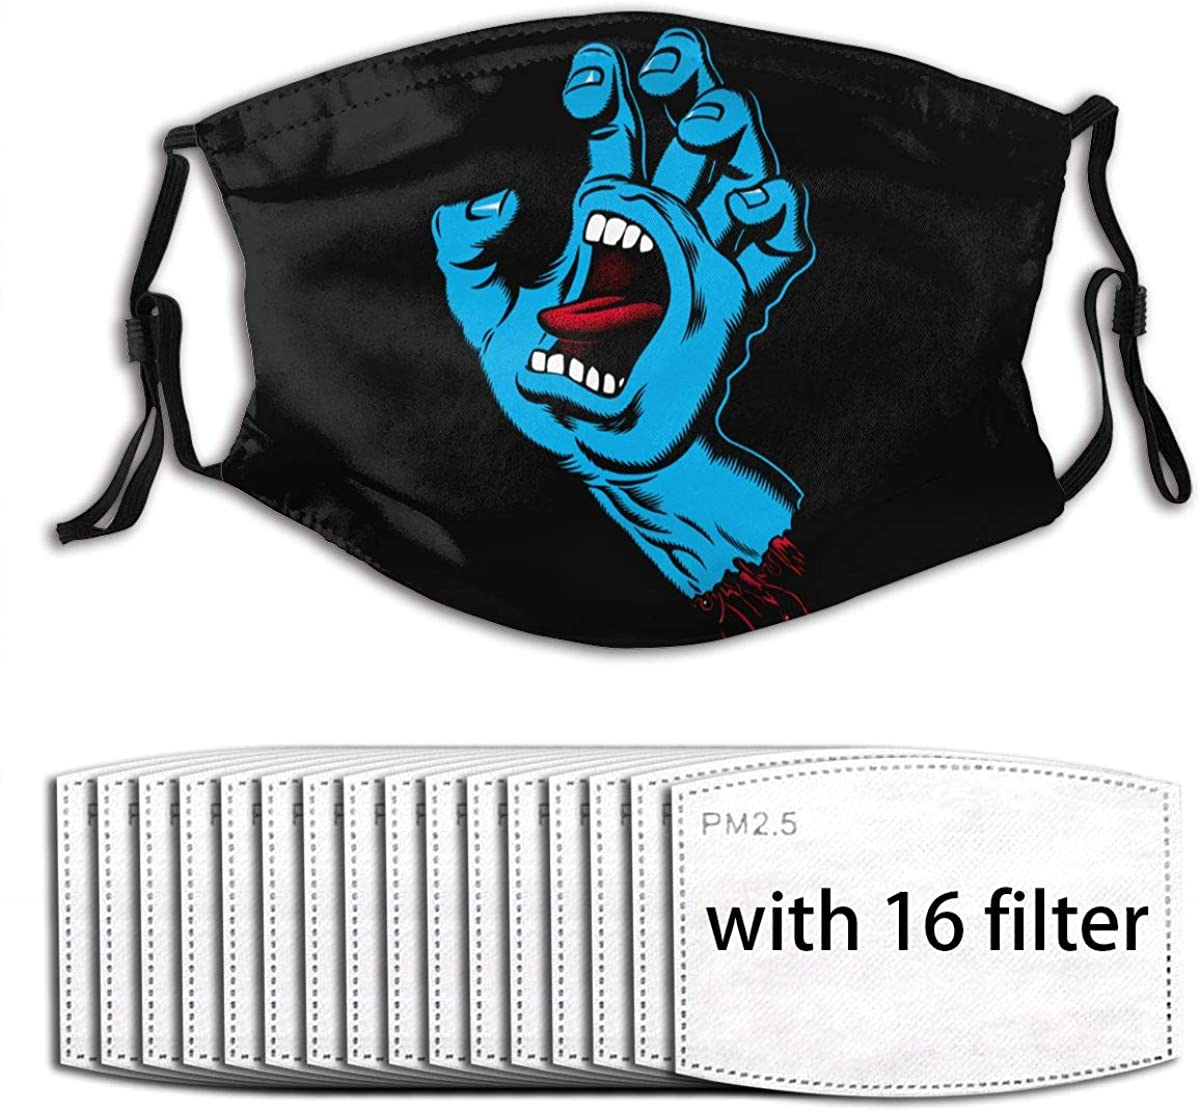 Gutter-mouth Face Cover Anti-Dust Pollution Outdoor Reusable Washable Earloop Cover